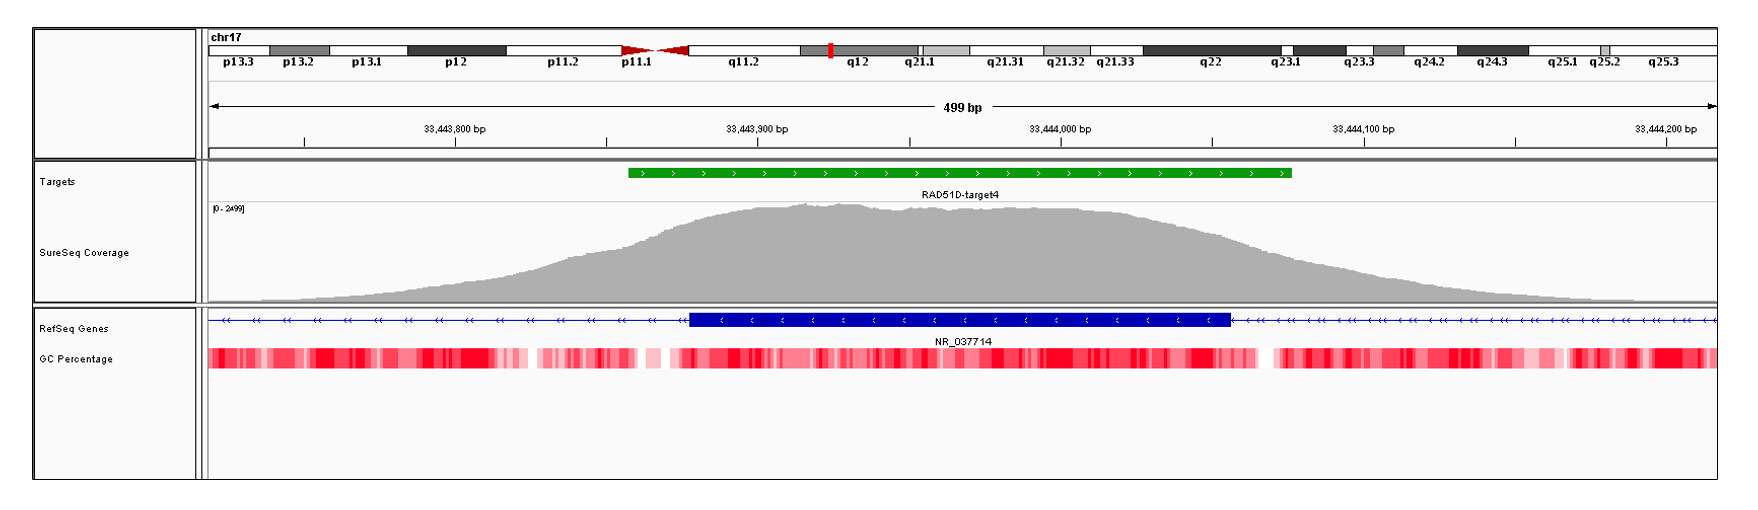 RAD51D Exon 4 (hg19 chr17:33443878-33444056). Depth of coverage per base (grey). Targeted region (green). Gene coding region as defined by RefSeq (blue). GC percentage (red). Image